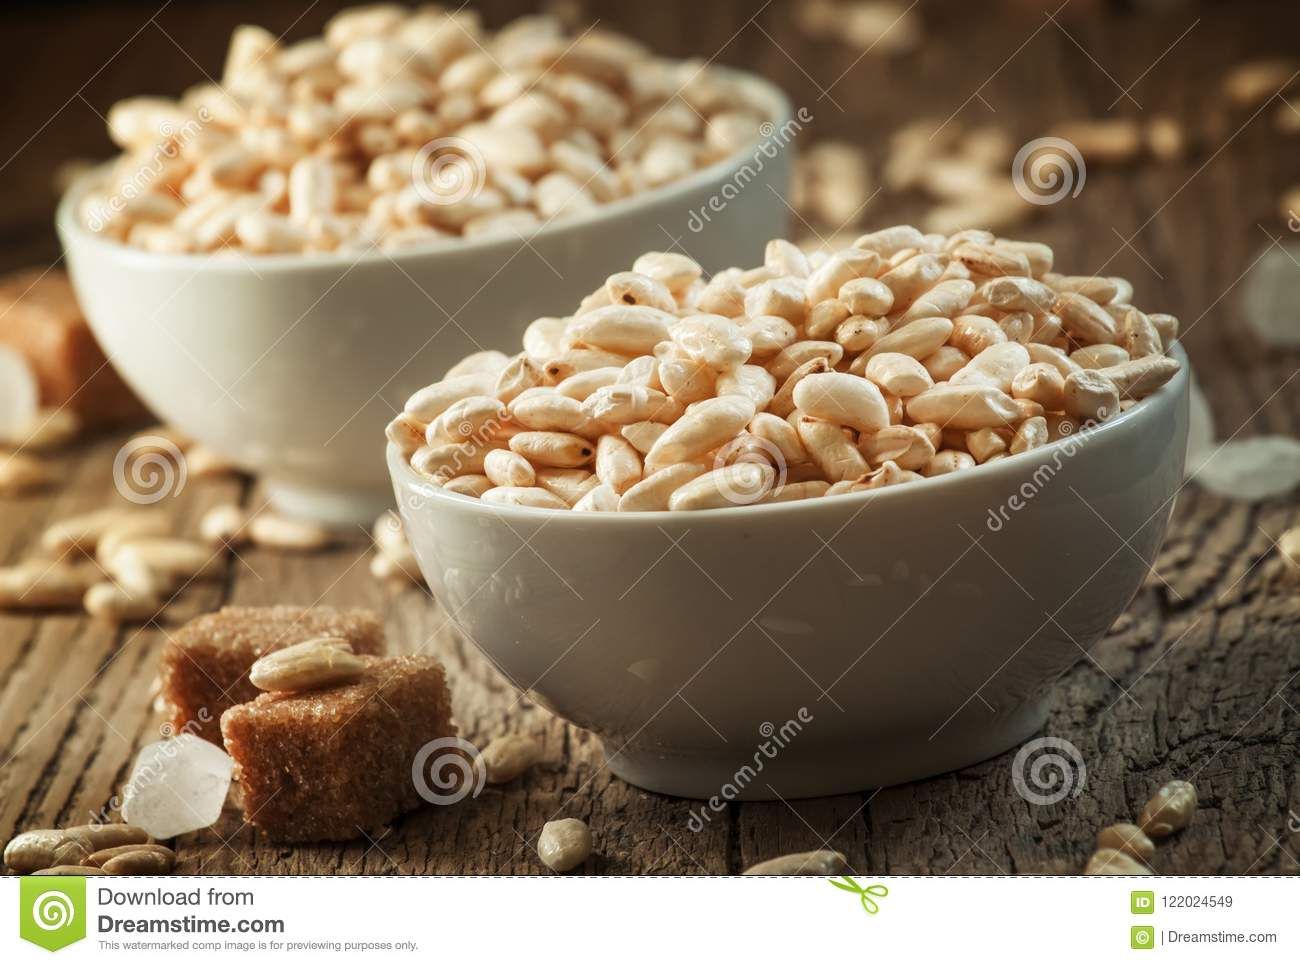 Puffed sweet rice in caramel in white porcelain bowls with cane